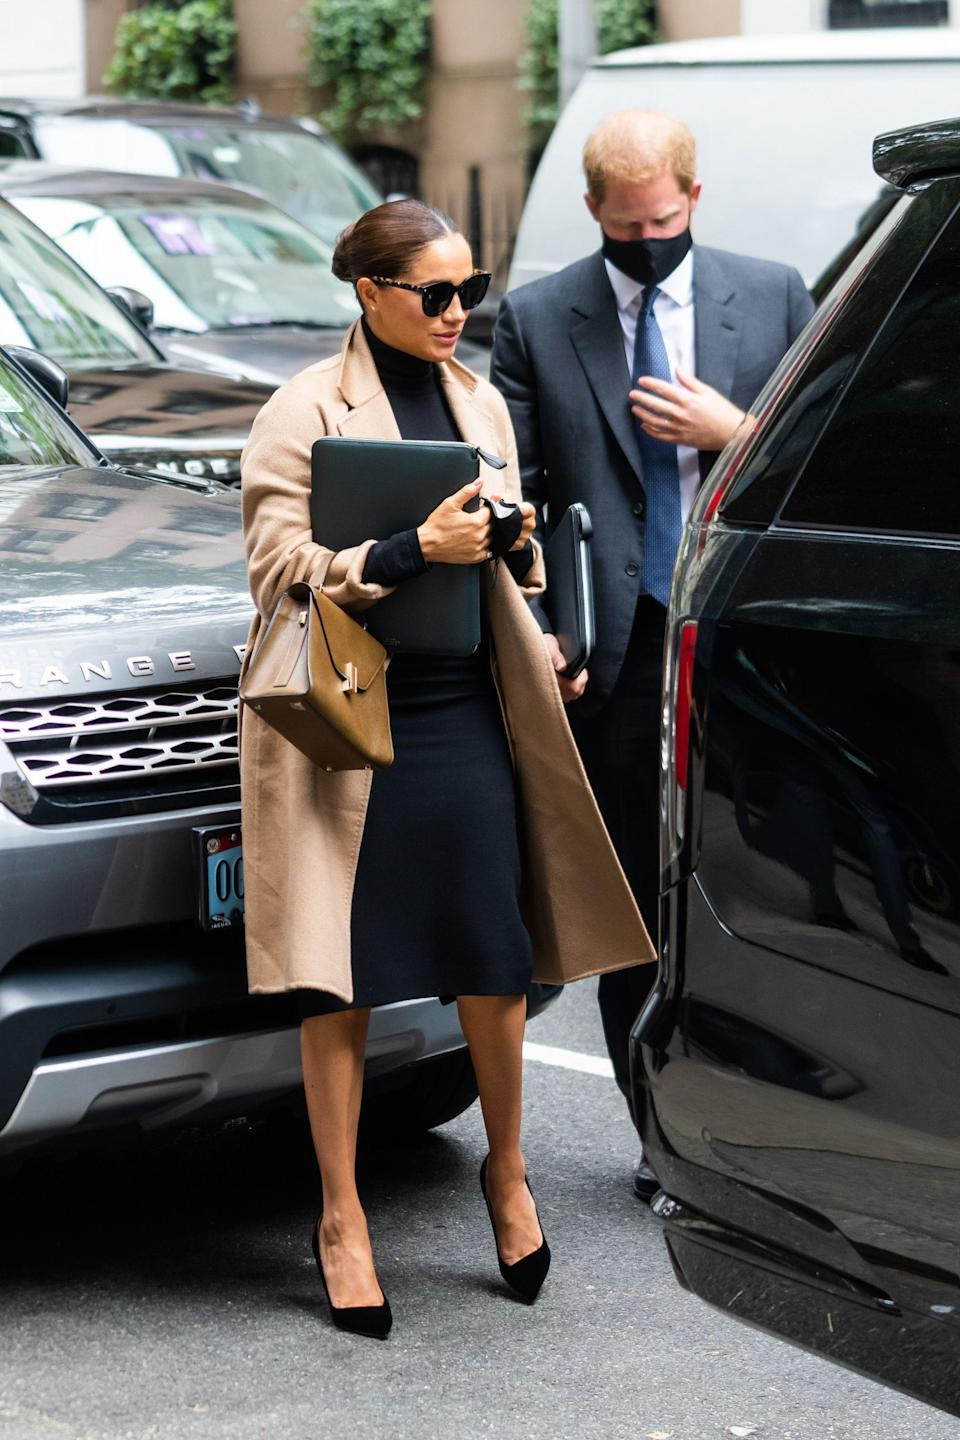 <p>We don't need to tell you that, for women at least, the camel coat will never date. Whereas navy and black are elegant in an understated way, biscuity beige and caramel shades will always spell out luxury. </p><p>From Lauren Bacall's sequin-lined 'Subway' design and Jackie Kennedy's neat-as-a-pin '60s styles, to the sumptuous wrap numbers Marilyn Monroe wore on set, camel coats have been a signifier of chic for as long as we can remember. Since 1908, in fact, when the outerwear was first created (by British brand Jaeger) from actual camel hairs, the rough strands forming a tactile but resilient nap. </p><p>Fast forward to the 21st century, and we've swapped this fabric for softer wool, cashmere and mohair iterations. The key shapes remain the same however. Which means: buy a camel coat now and you'll still be wearing it for years to come. </p><p>The secret to longevity is in a timeless silhouette; so we've narrowed down the only 12 worth investing in. You don't need them all, of course, but keep a few hanging in your wardrobe and you'll be uniformed for every occasion. From classic chesterfield and belted iterations, to on-trend leather styles, here's Bazaar's pick of the best camel coats out there.</p>